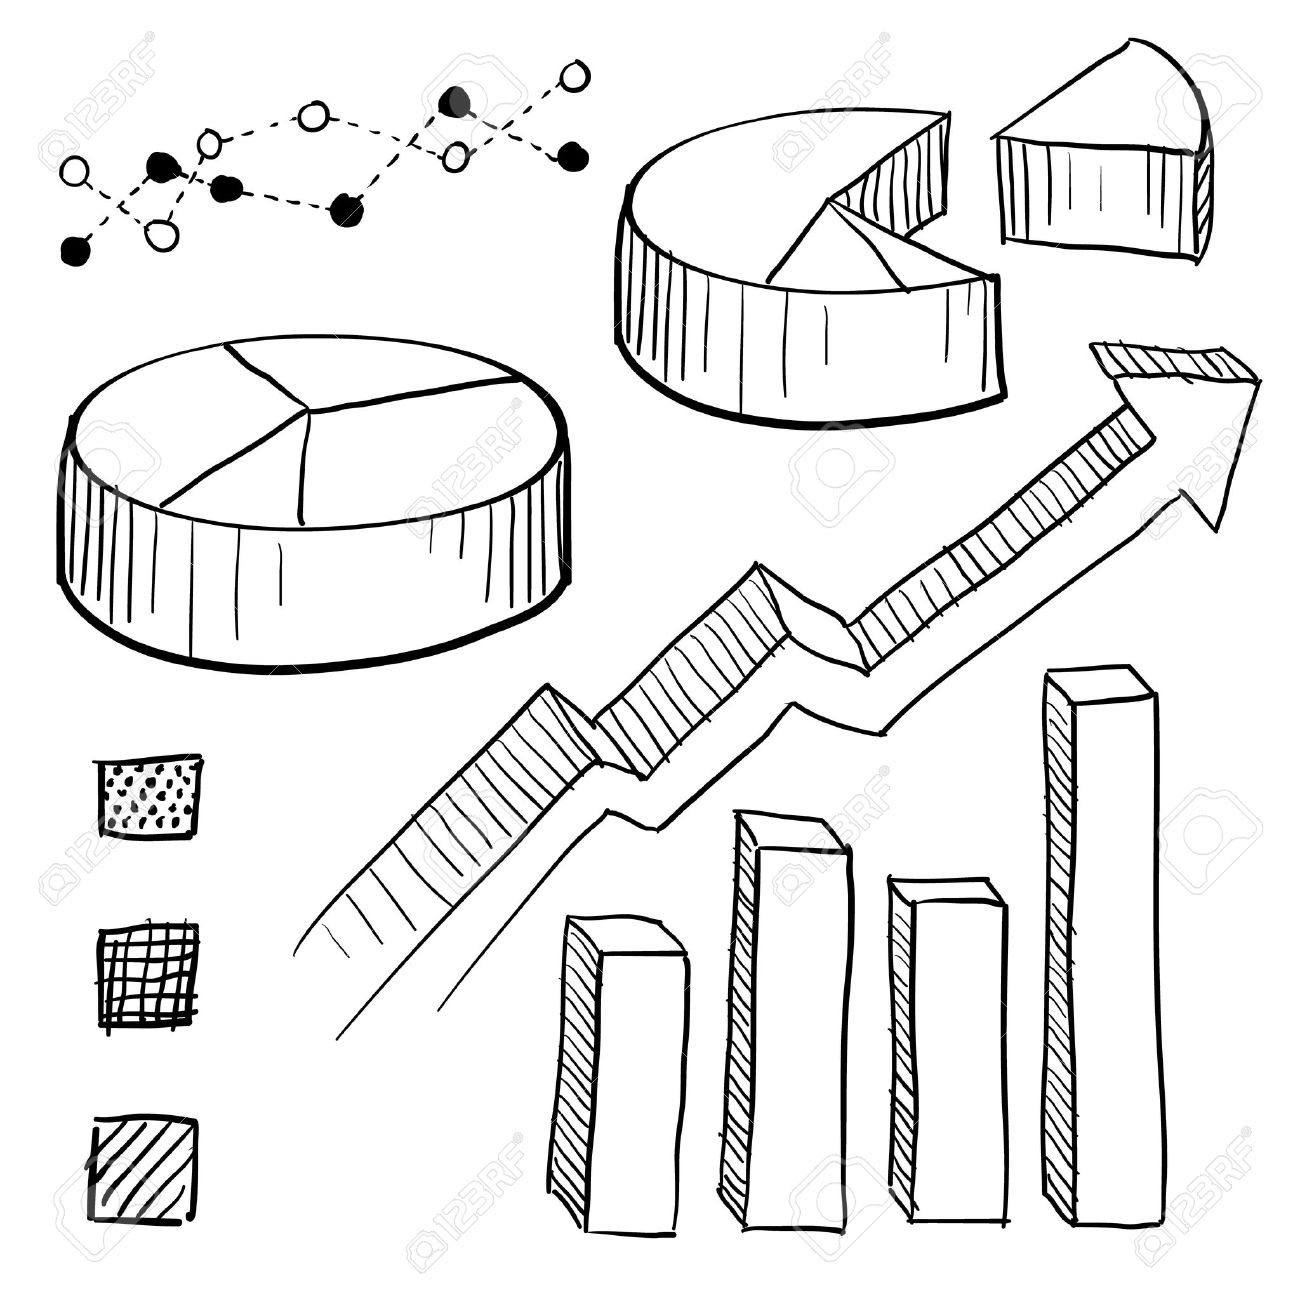 Doodle style charts graphs and plotting components illustration doodle style charts graphs and plotting components illustration set includes parts for pie charts nvjuhfo Image collections